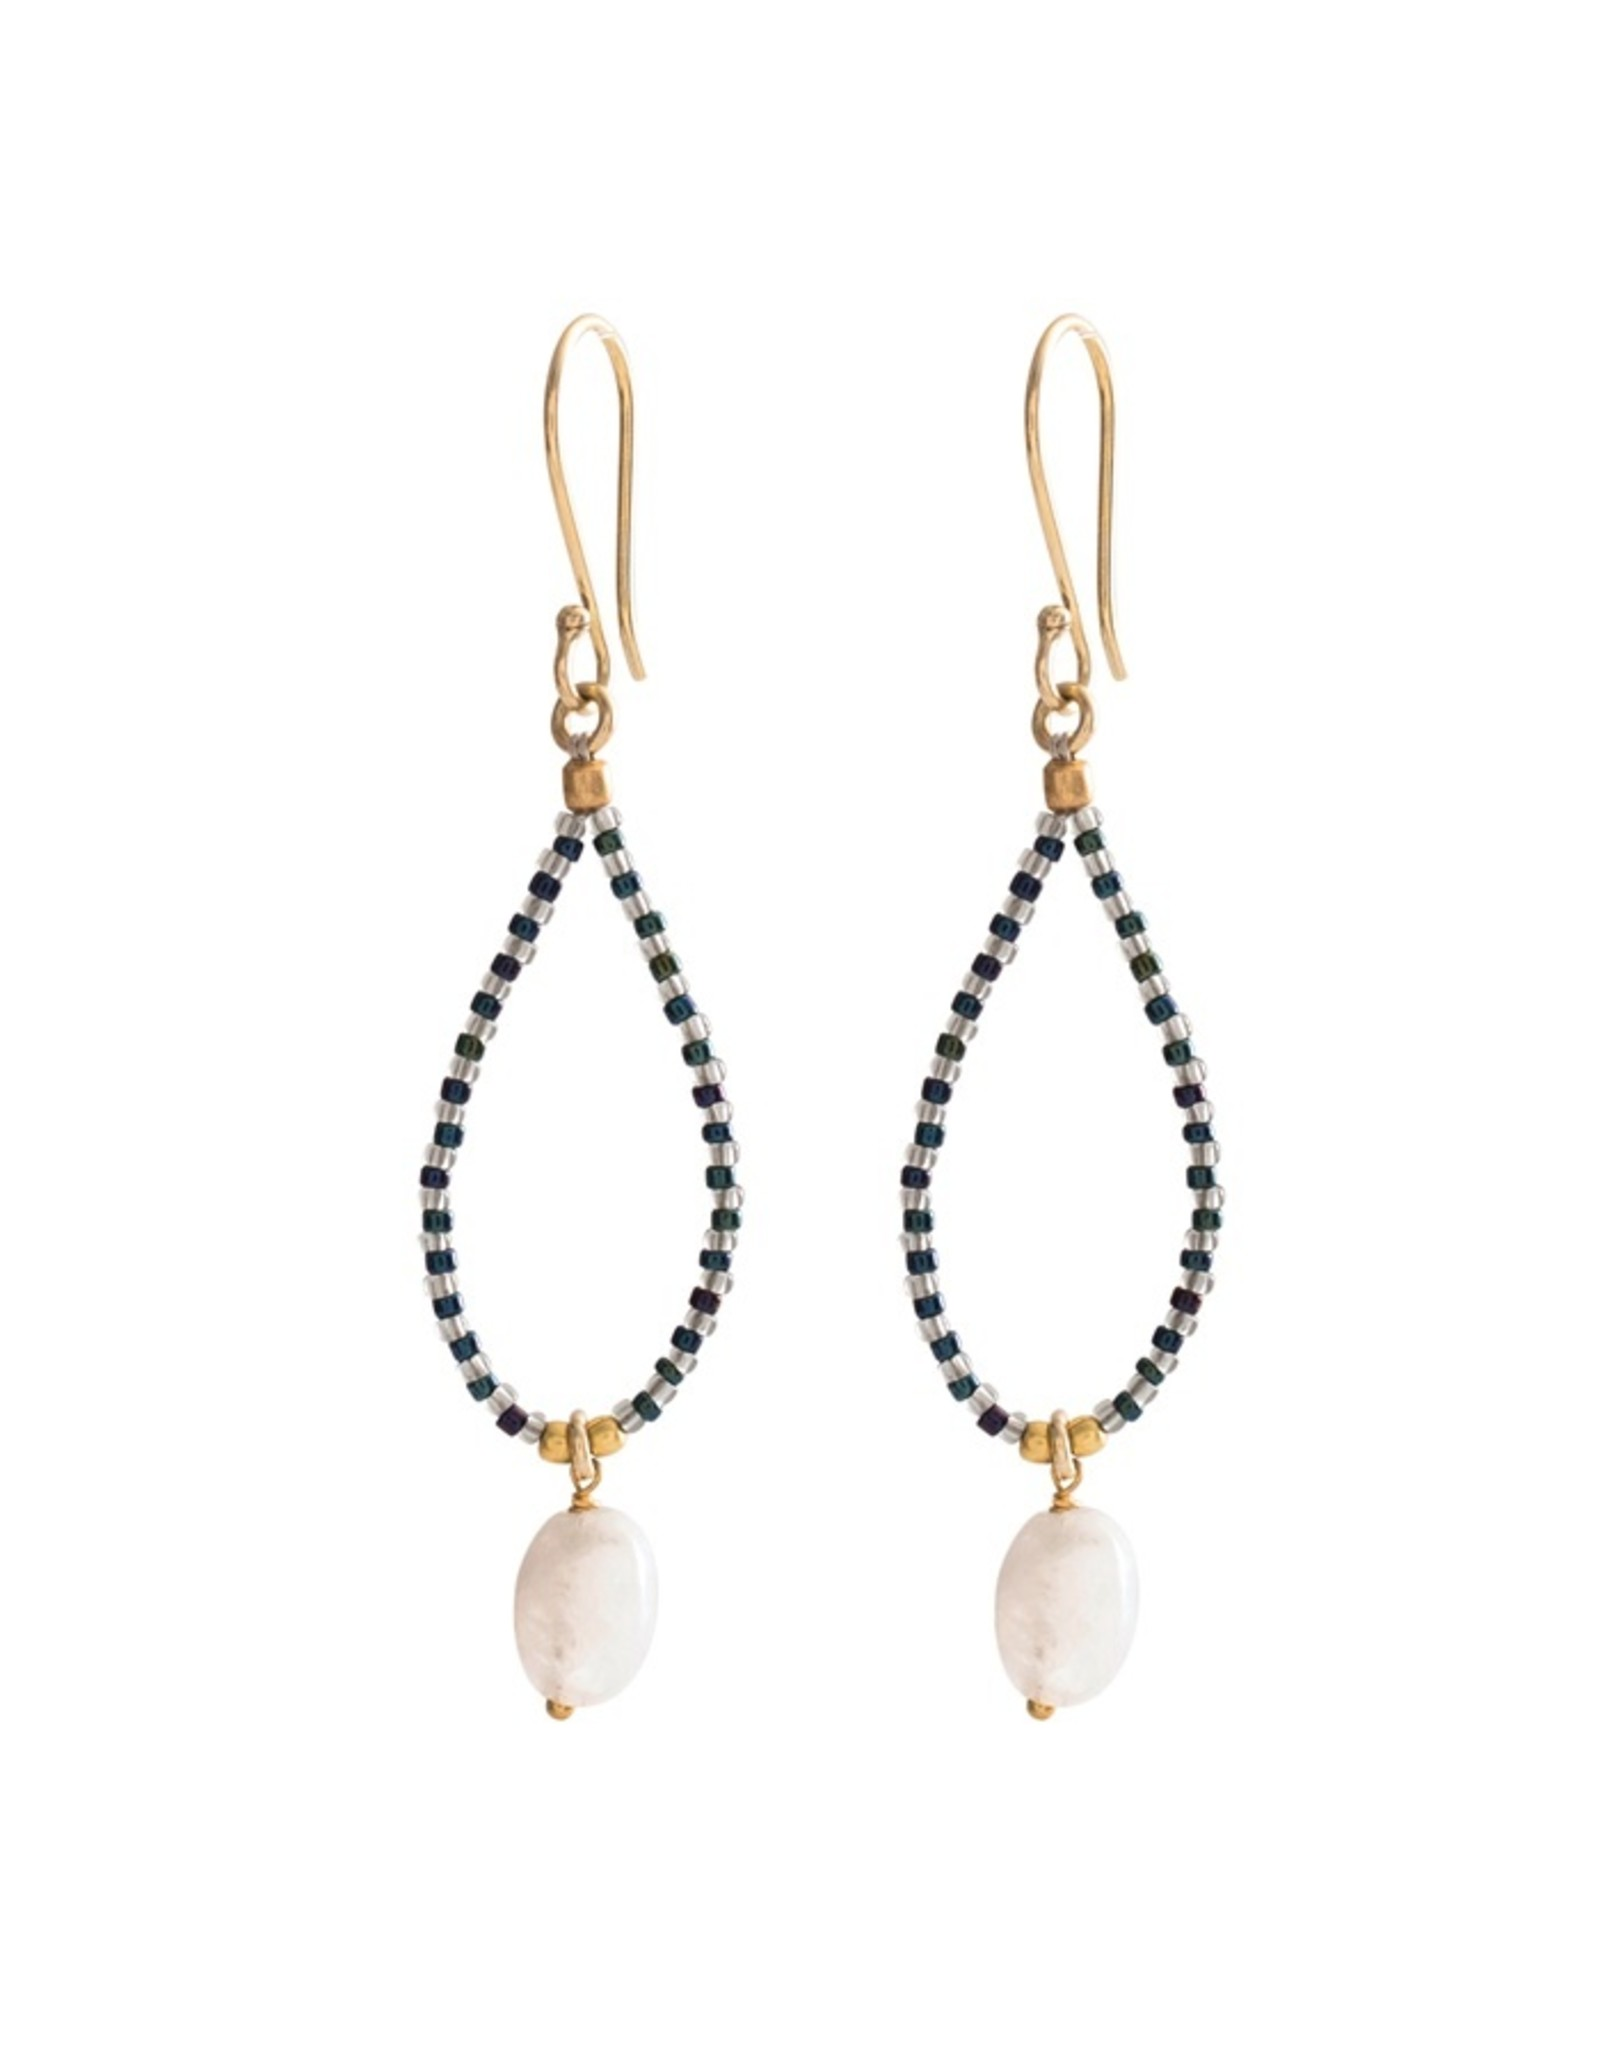 A beautiful Story Magical Gold Plated Earrings